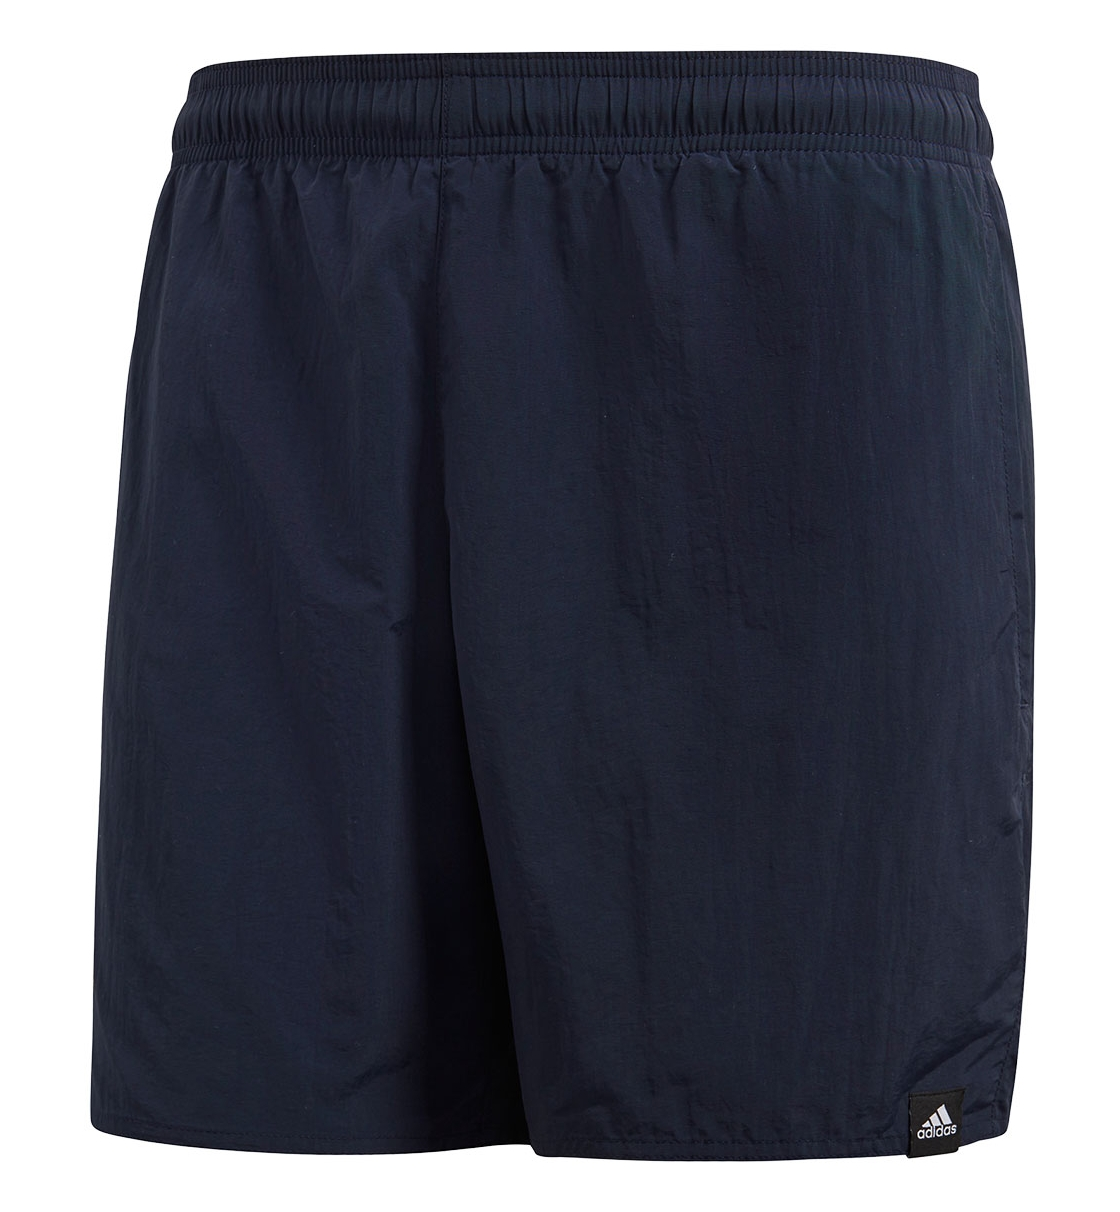 Adidas Fw19 Solid Short Short-Length